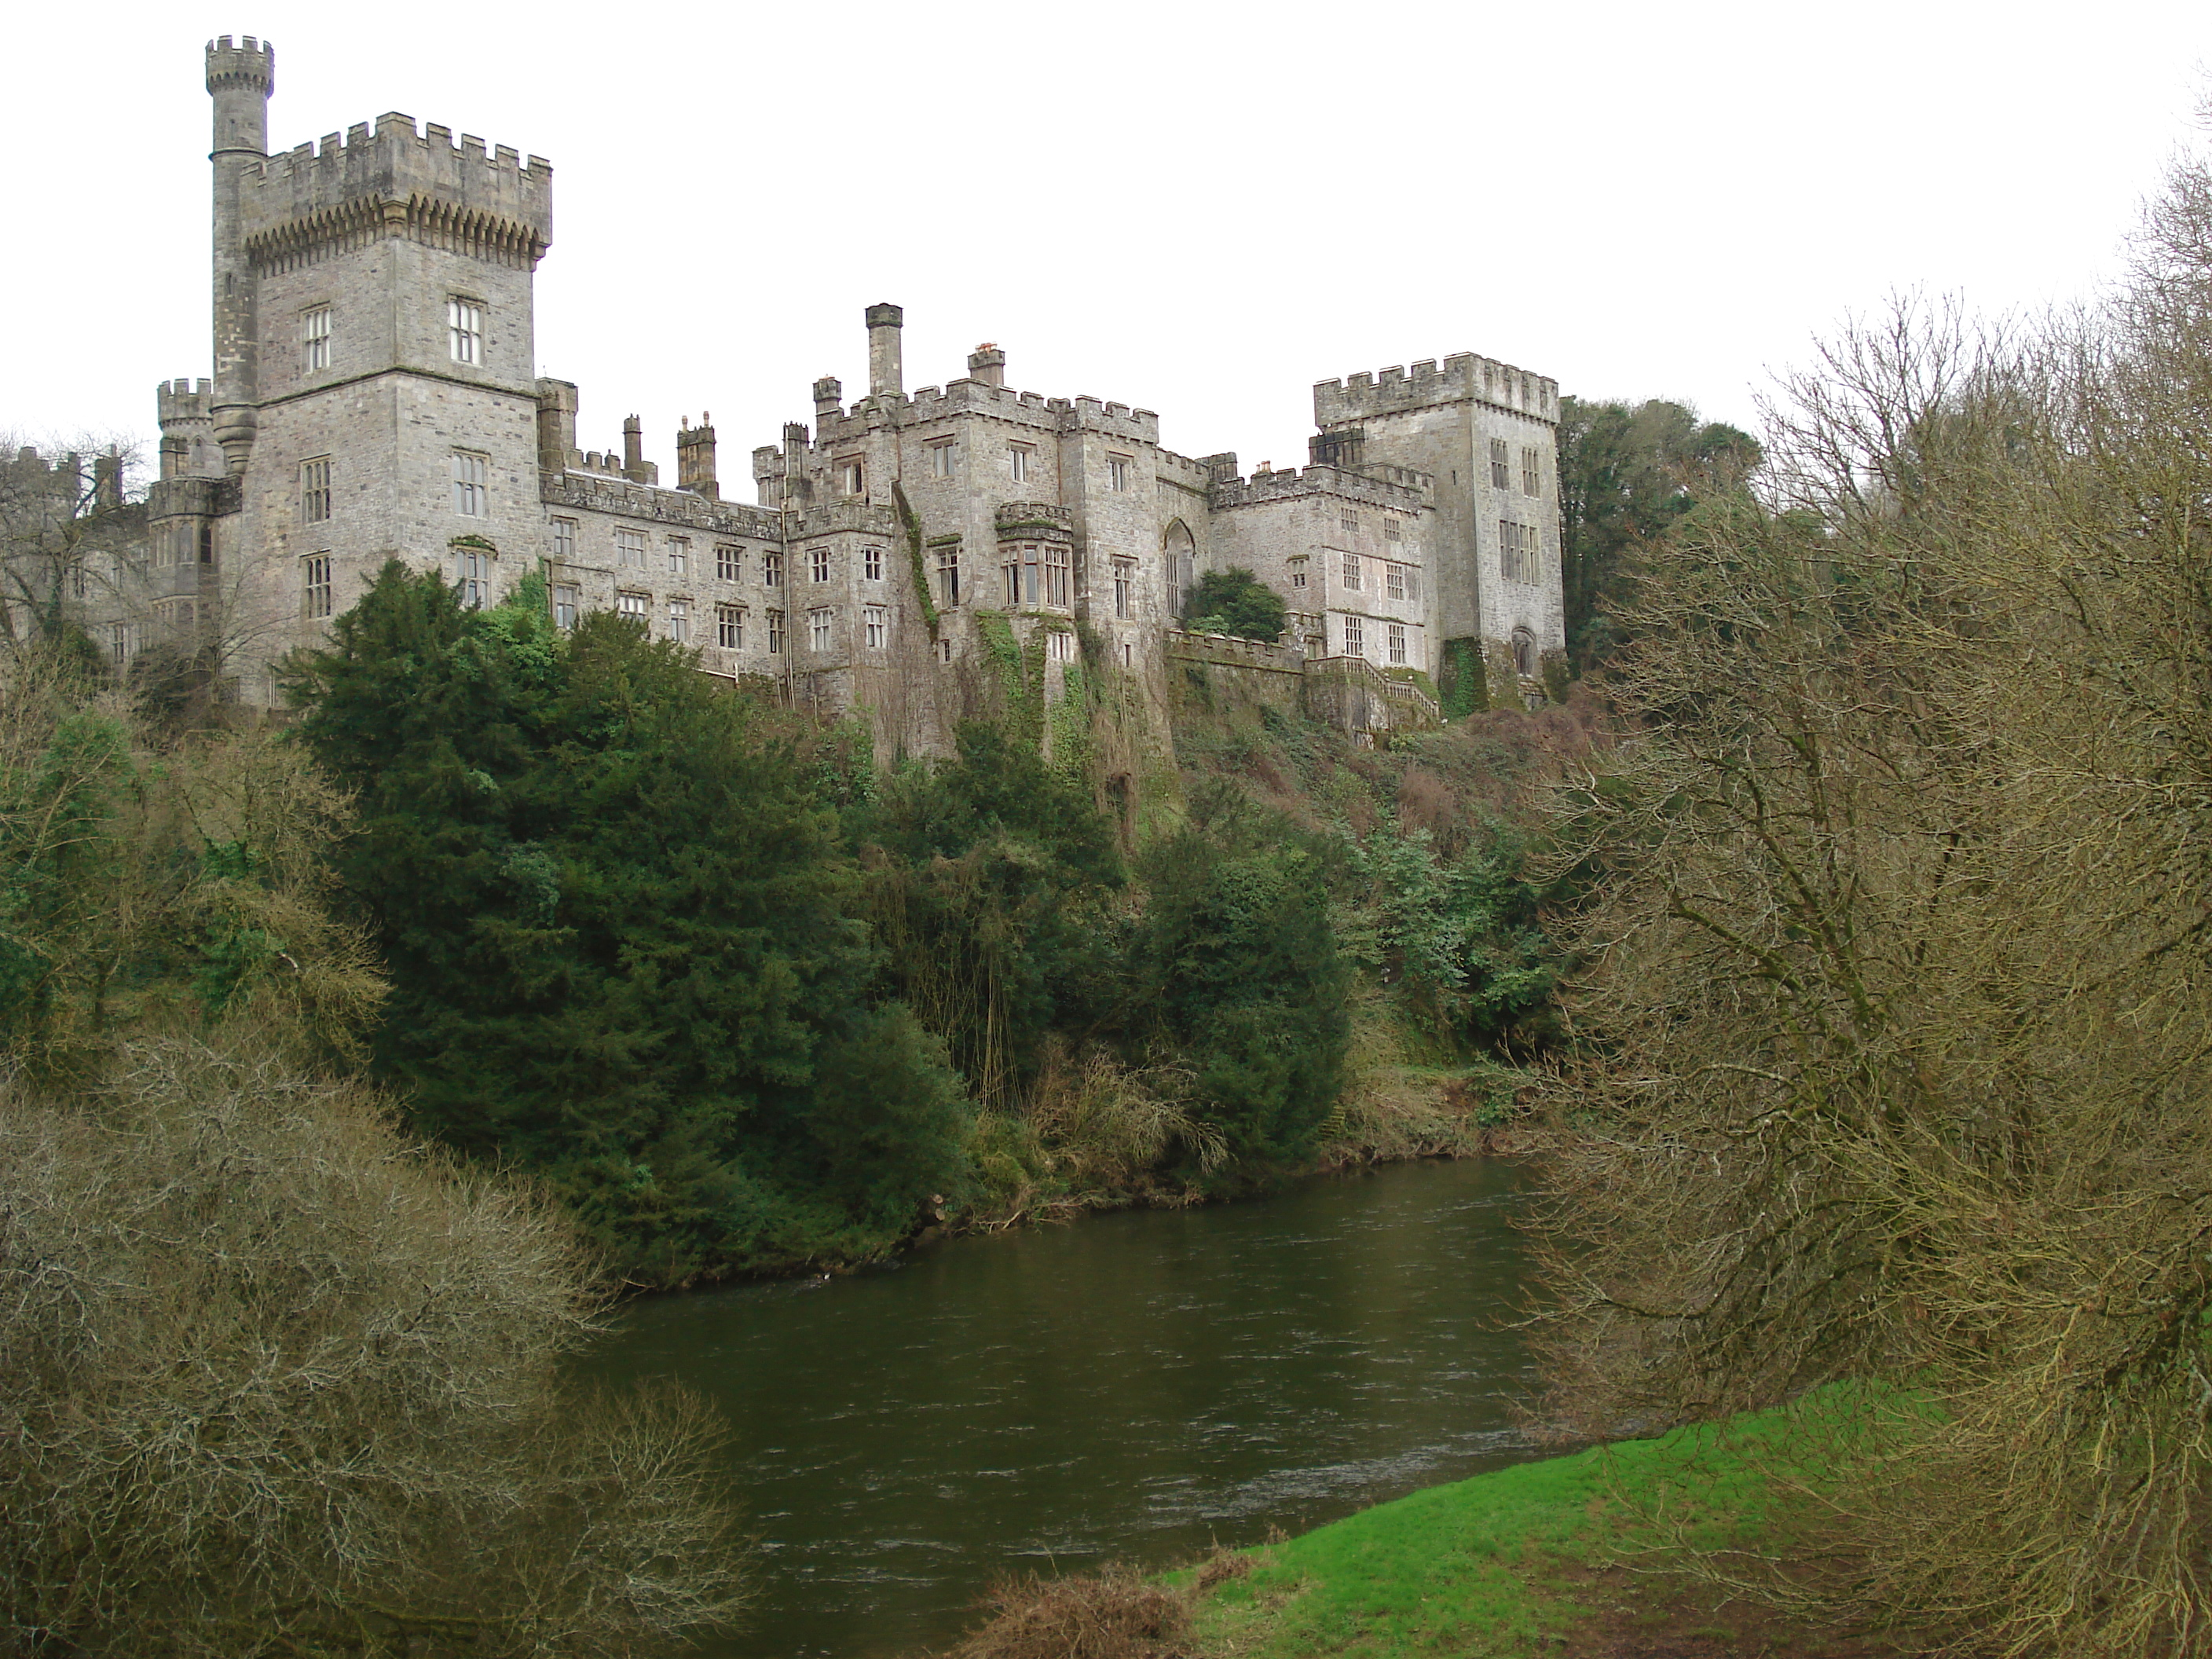 Lismore Castle in Waterford County